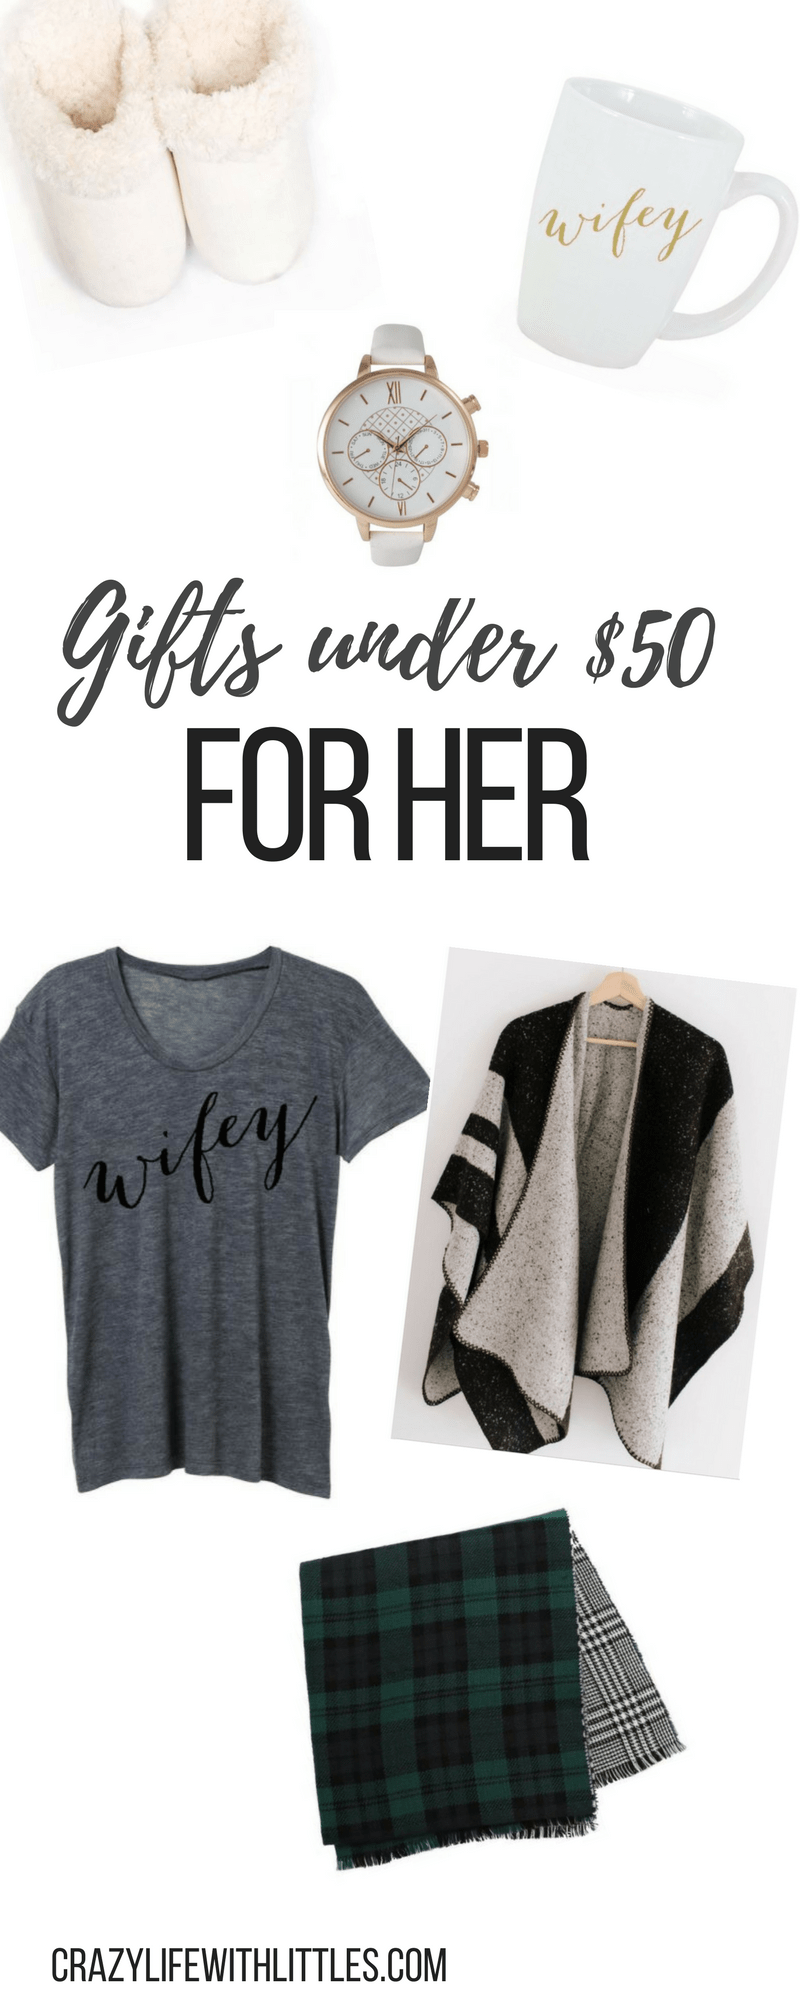 #giftsforher #anniversary gifts for women, gifts for her, gifts under $50, holiday gifts for her